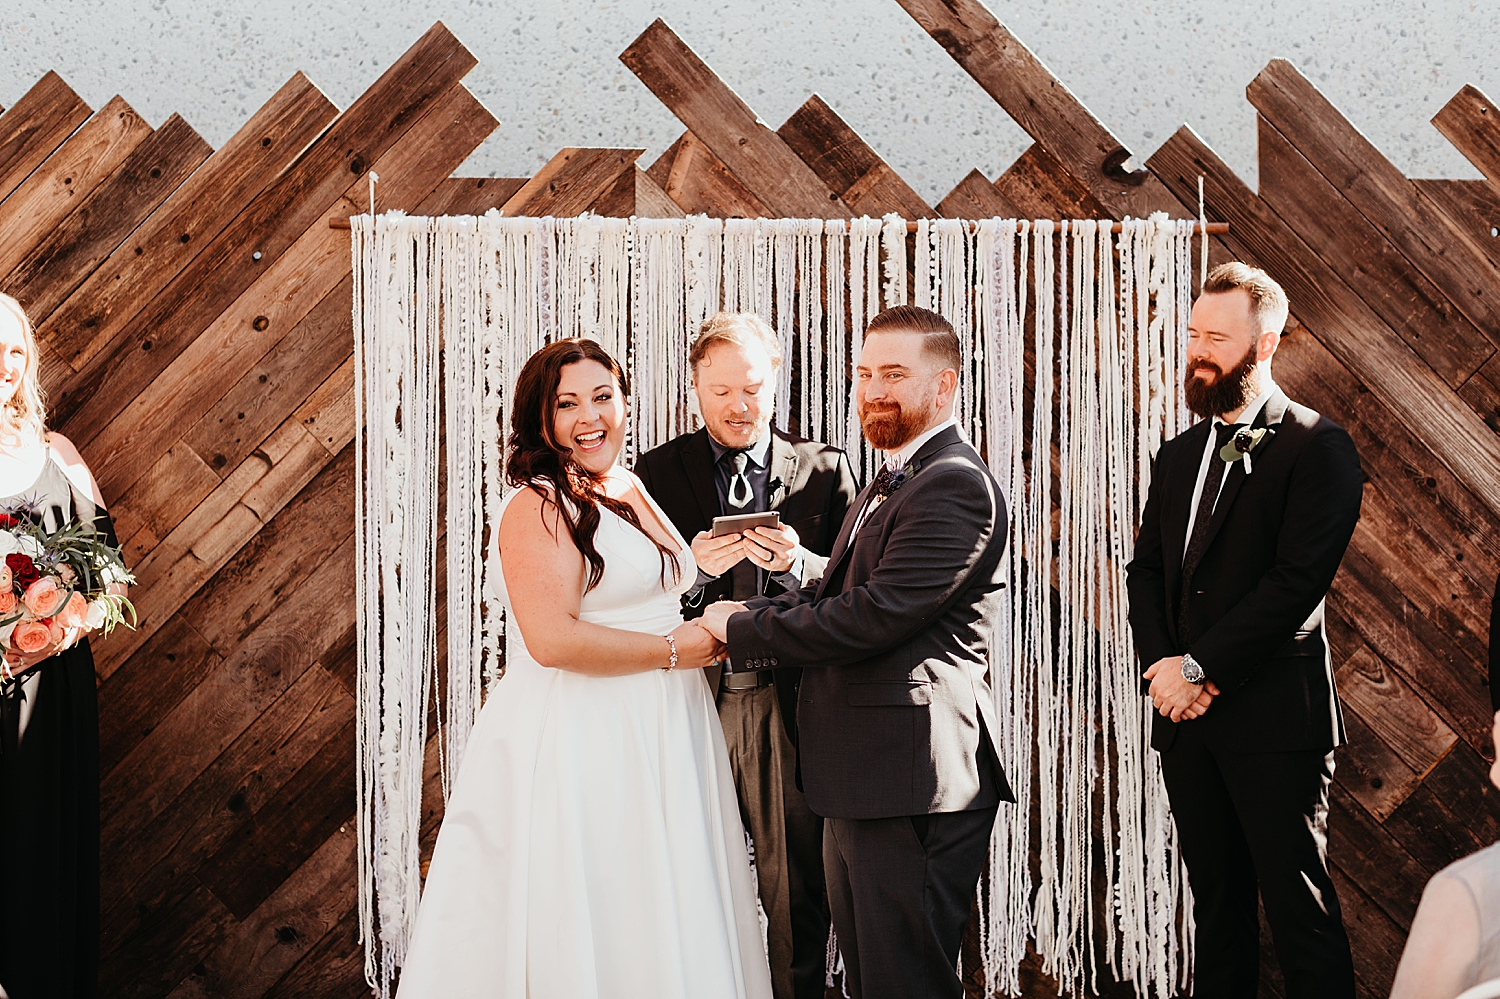 The-Wood-Shed-Booze-Brothers-Wedding-80.jpg